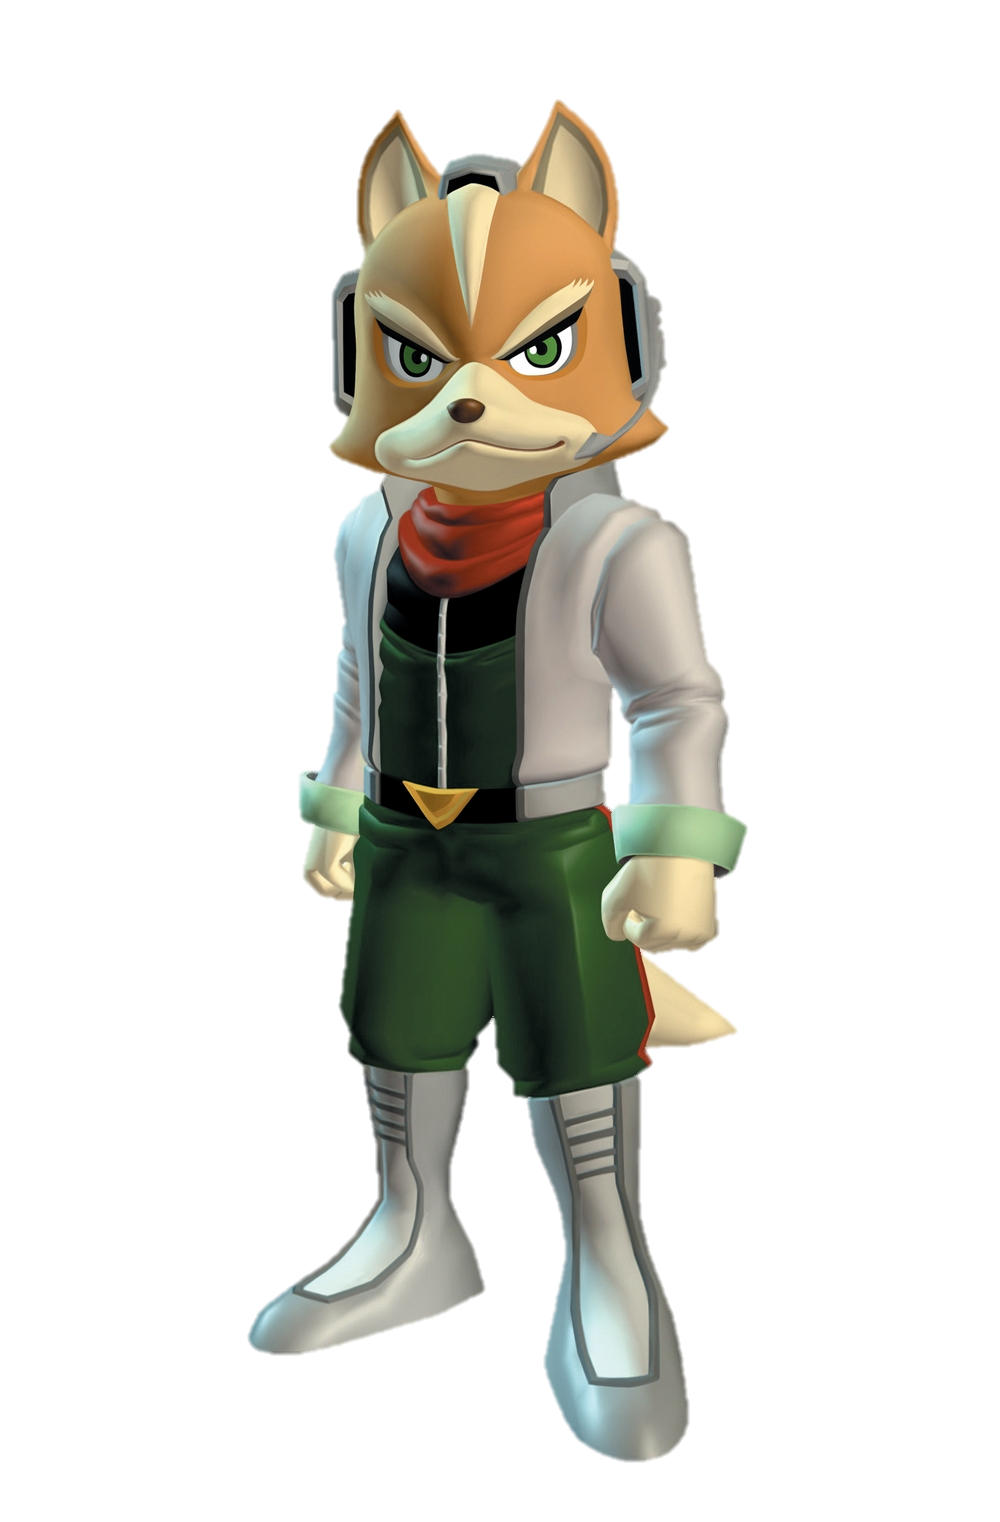 Star Fox Free Download Png PN